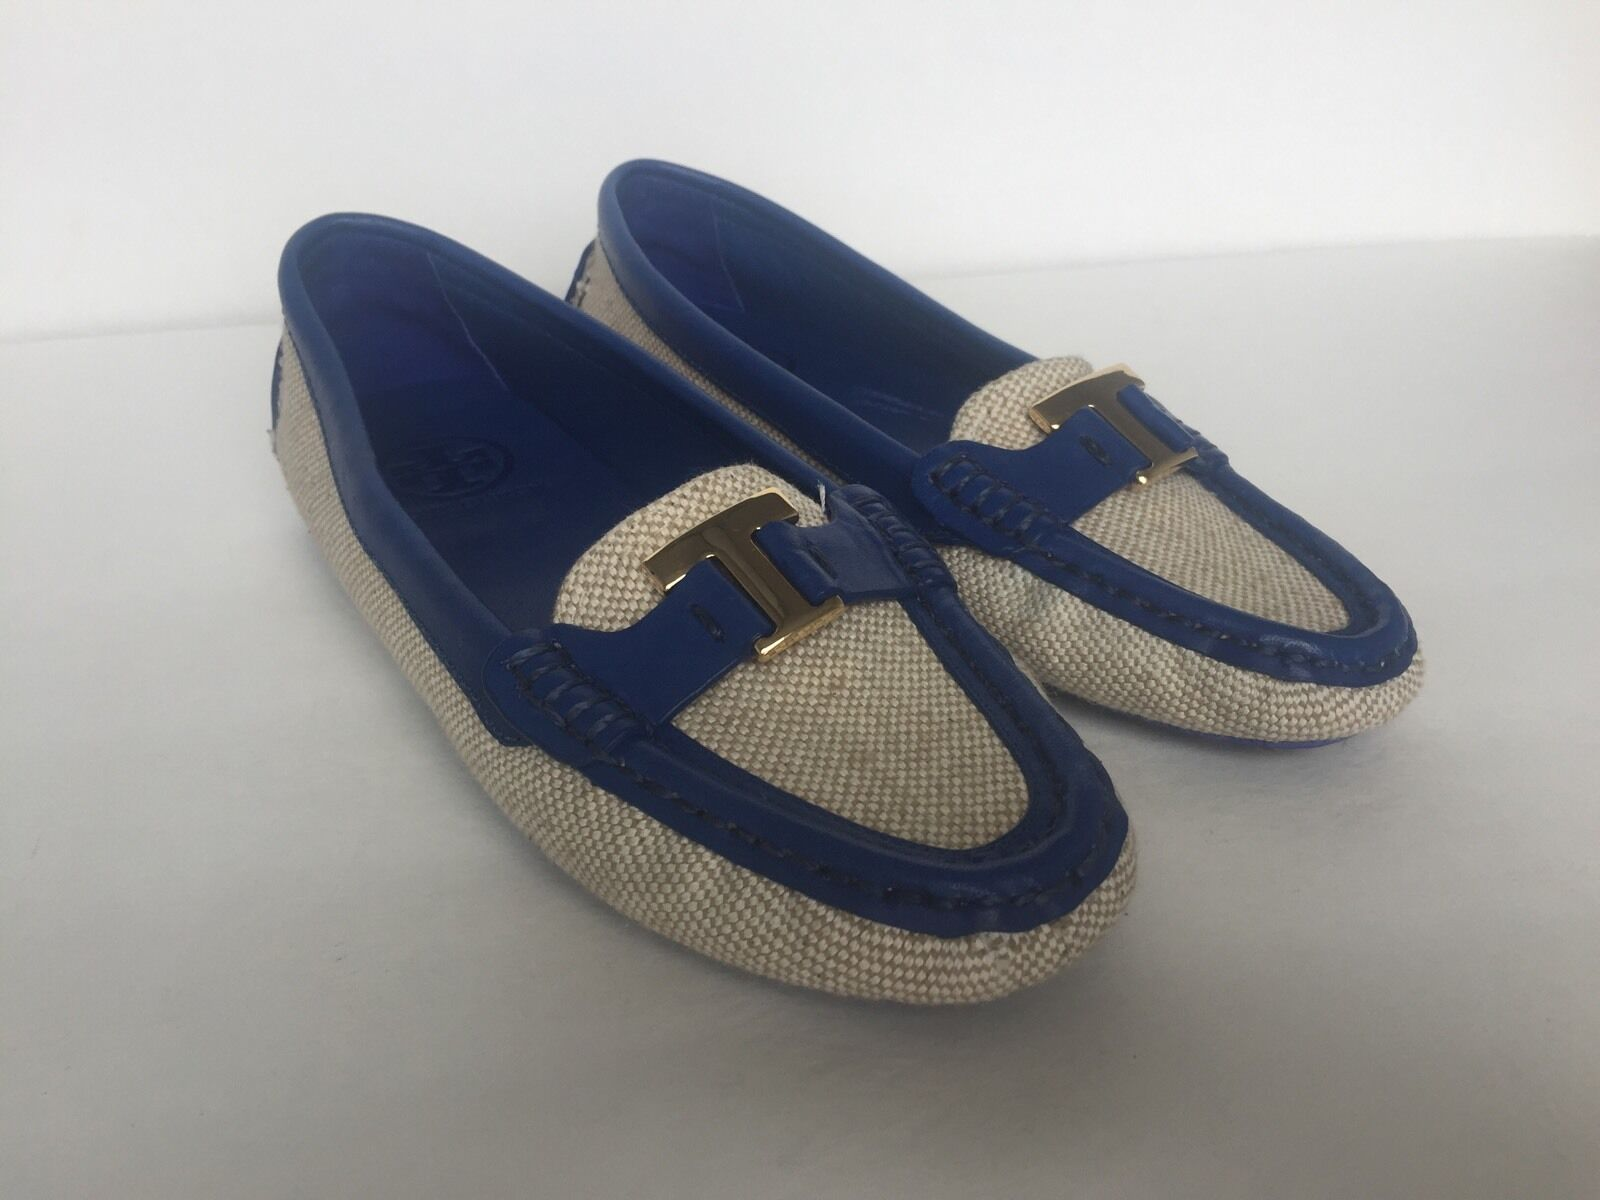 Tory Burch Burch Burch Women Casey Driver bluee Nile Leather Natural Canvas Loafer Sz.5M  275 3e5c74